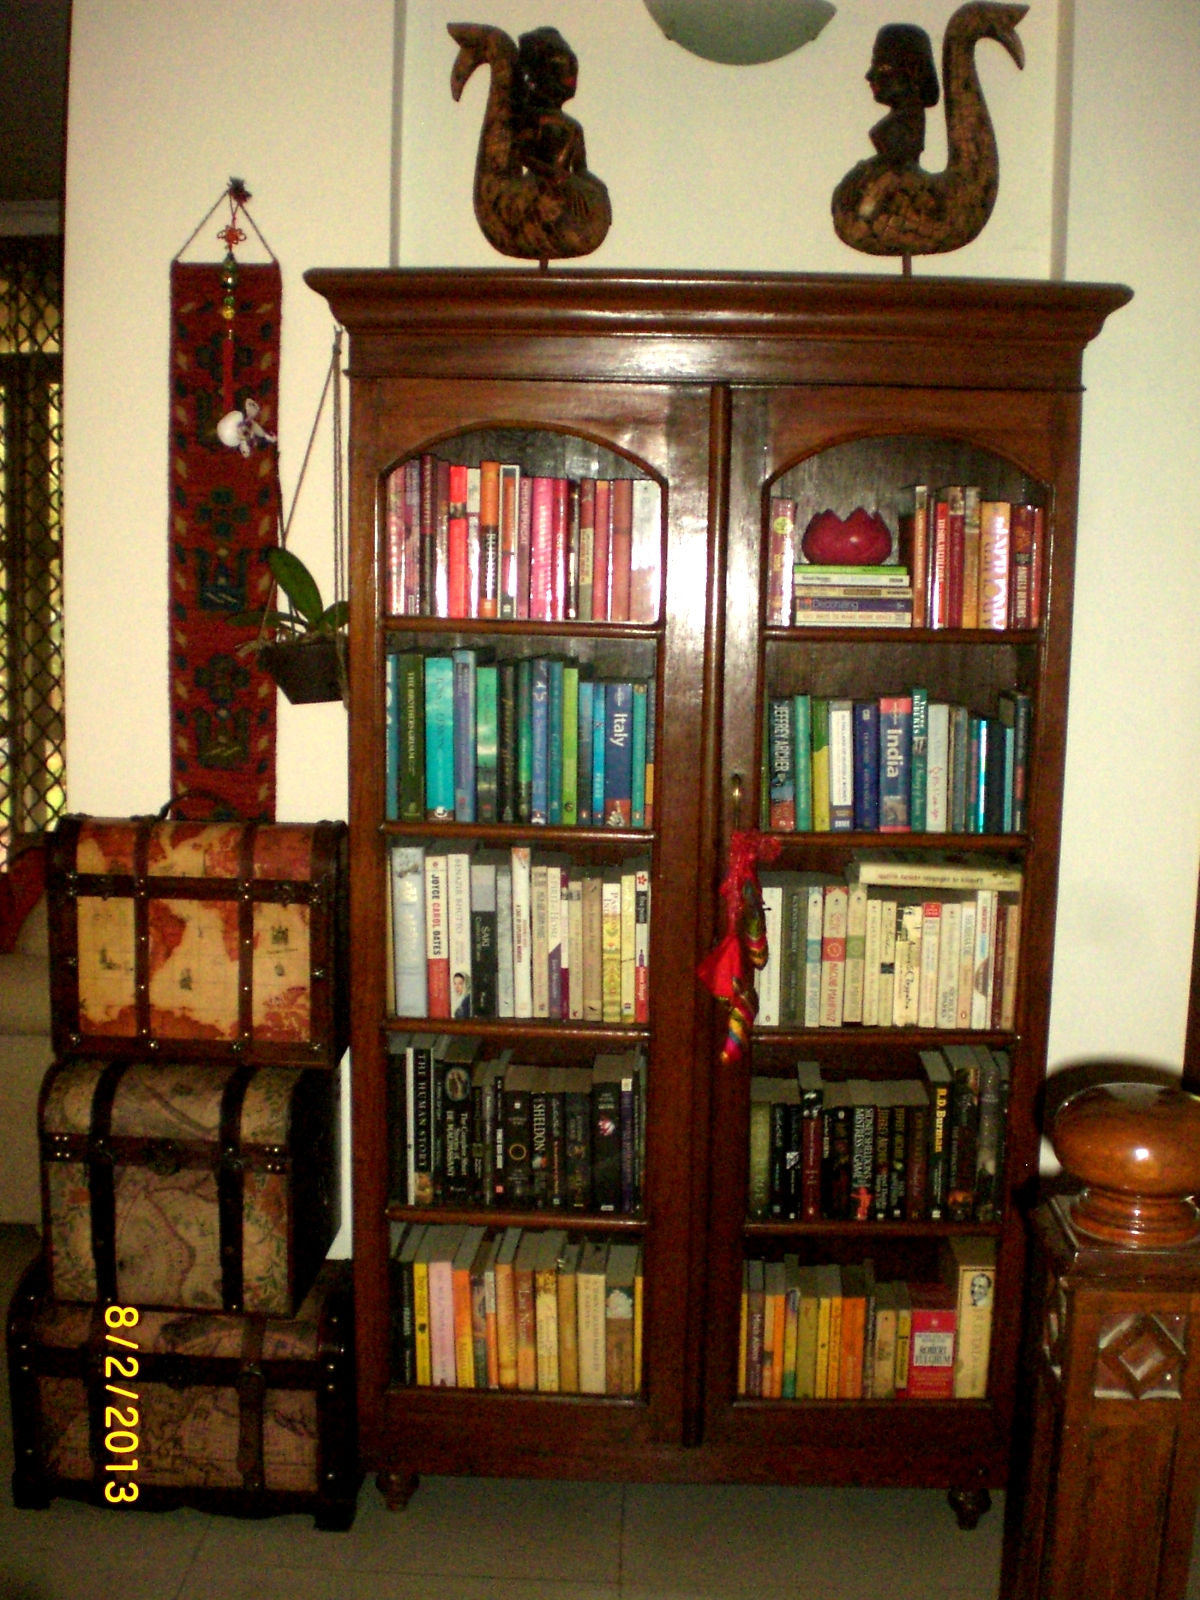 Seema and Rakesh bookcaseantique 1910 home Bangalore home tour